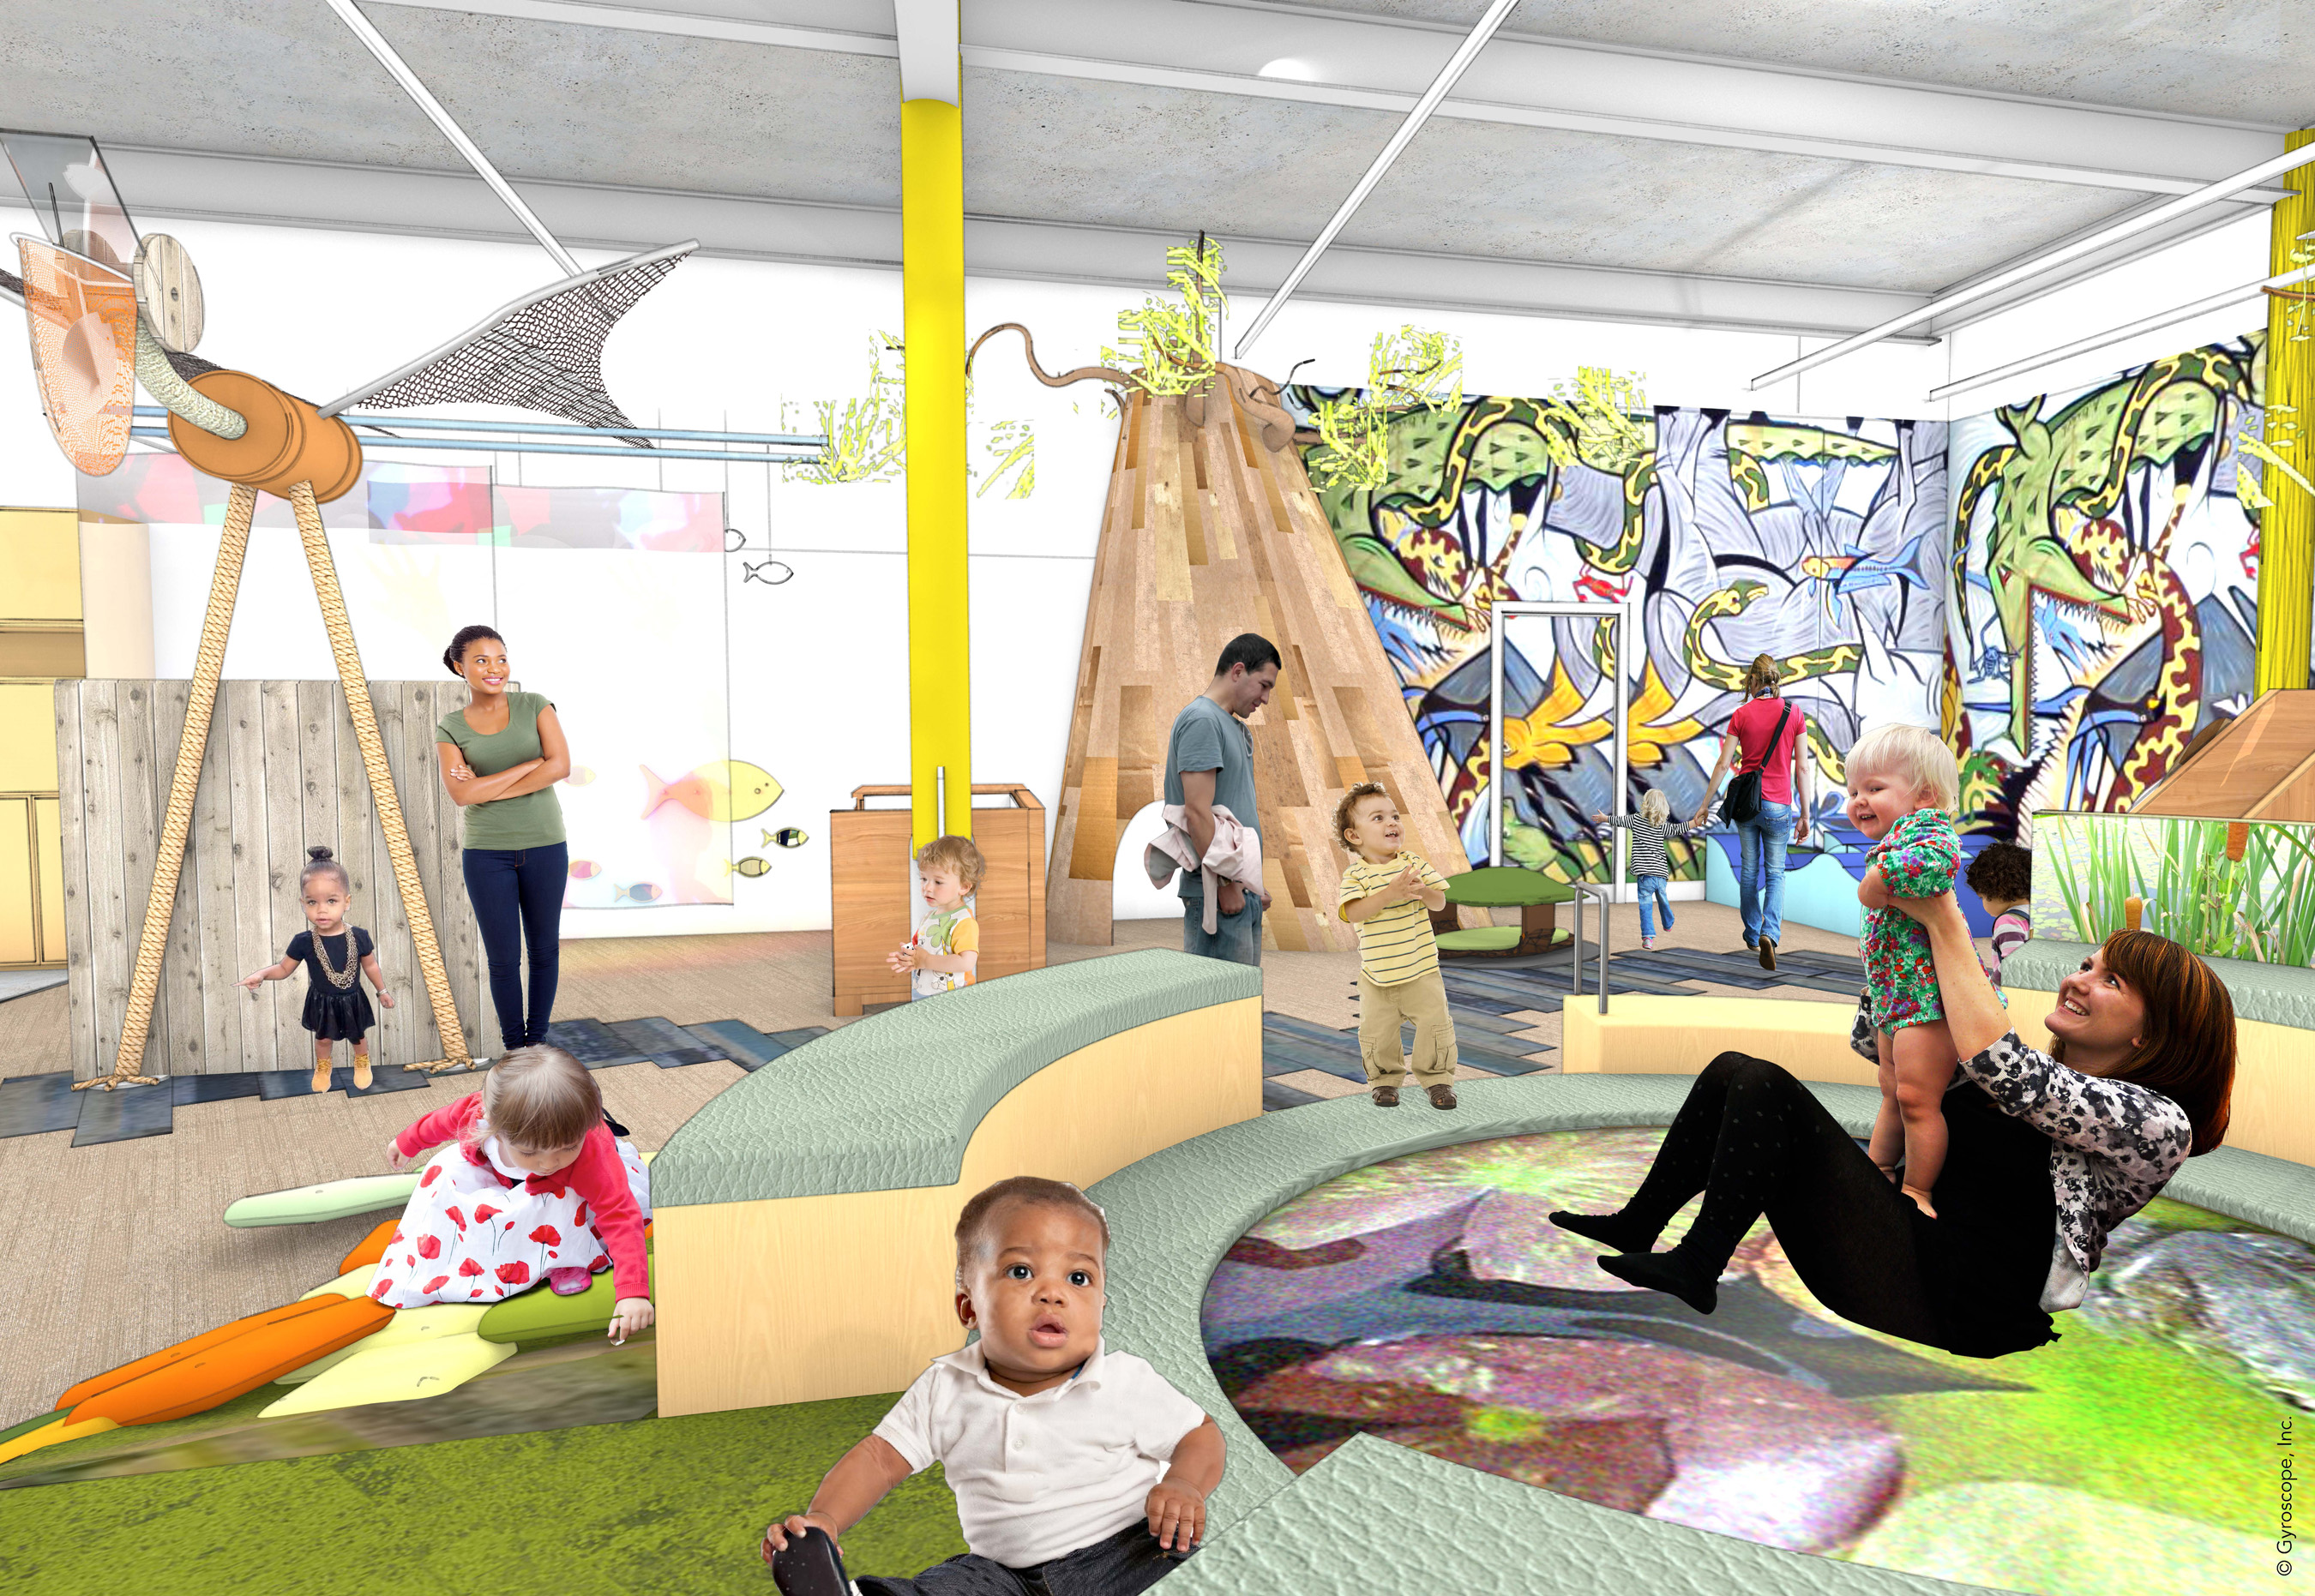 Architectural rendering of the Play With Me gallery, a space in the main Museum building designed specifically for infants and toddlers under age four with resources to support parents in their journey as their child's first teacher. (credit: Mithun)